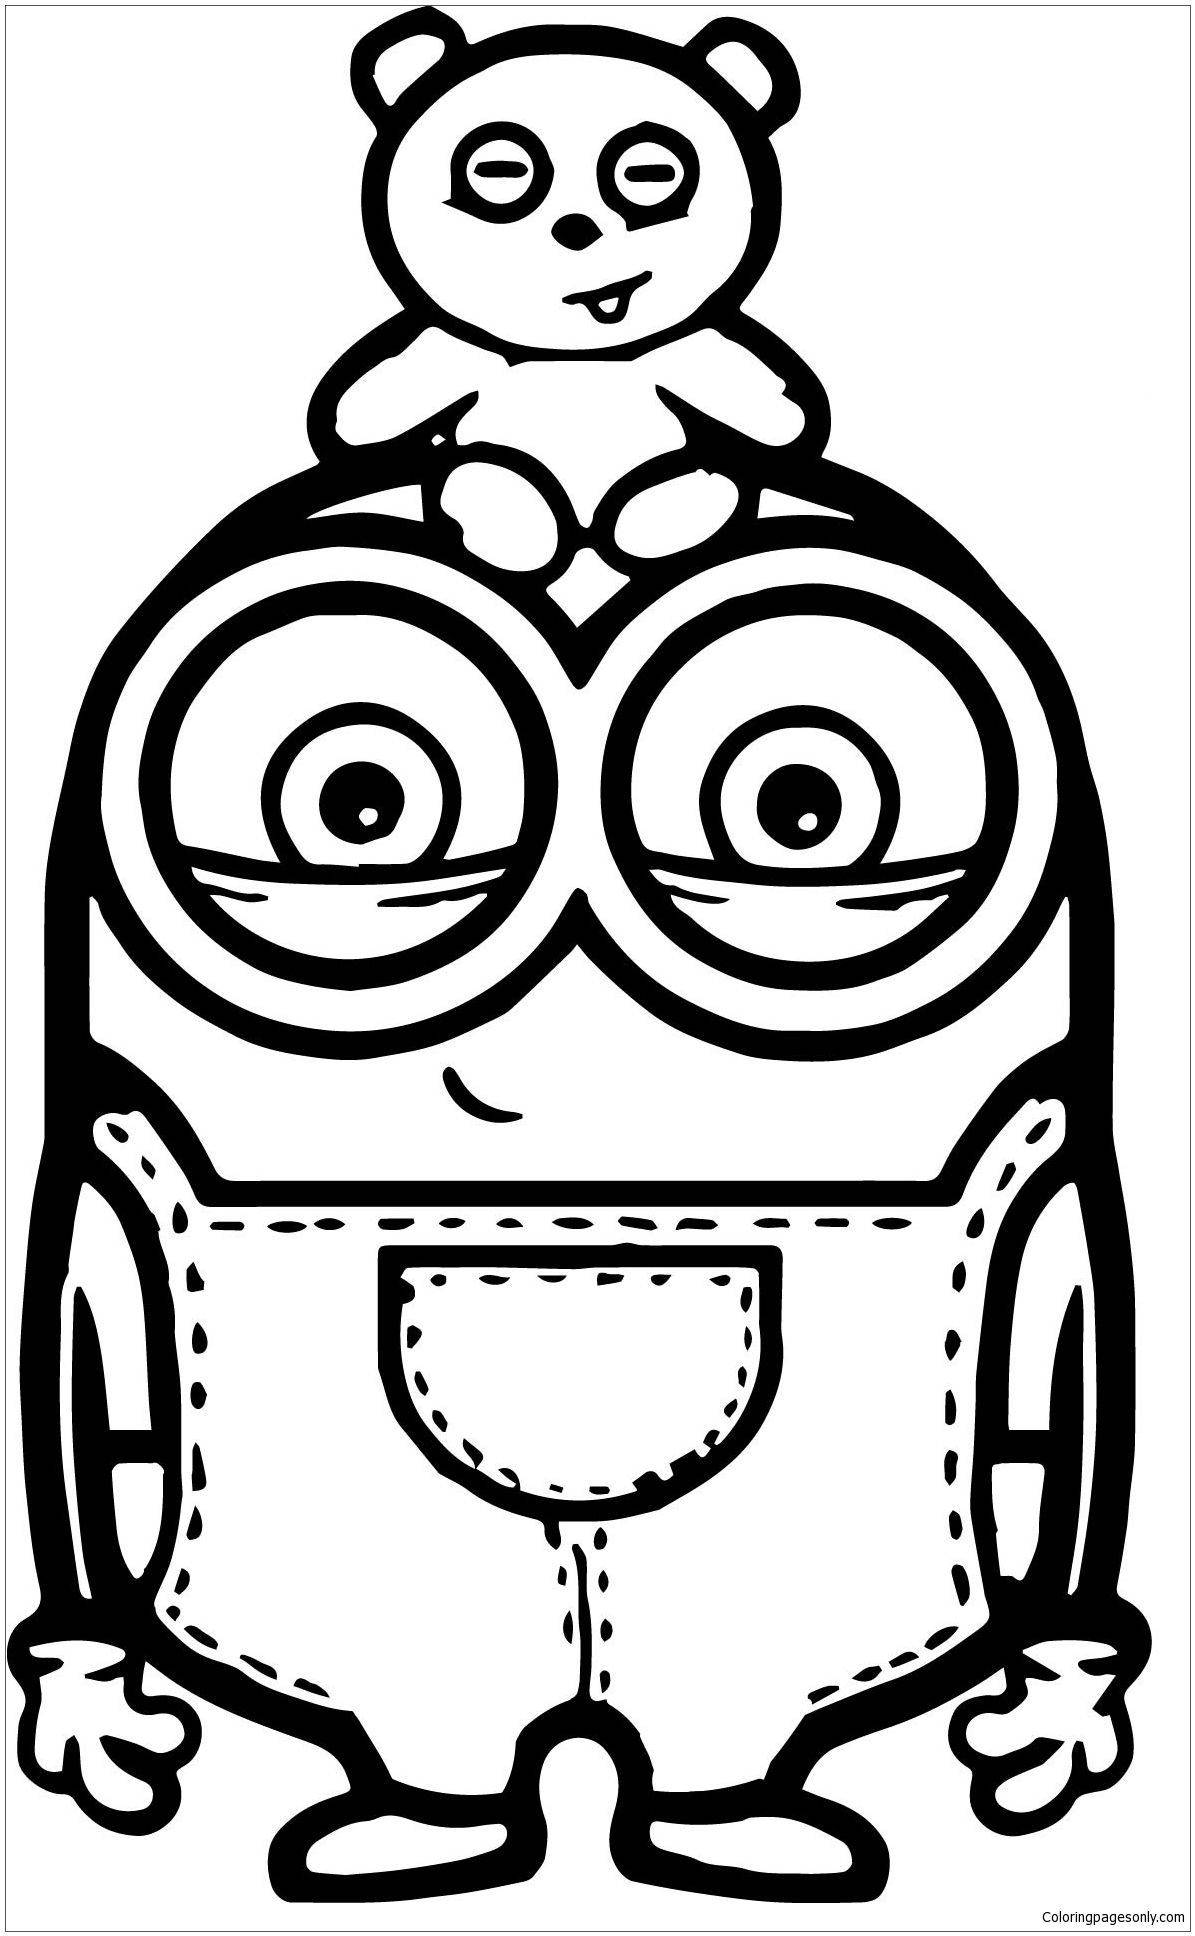 bob the minion coloring pages minion coloring pages bob all versions and poses the coloring bob pages minion